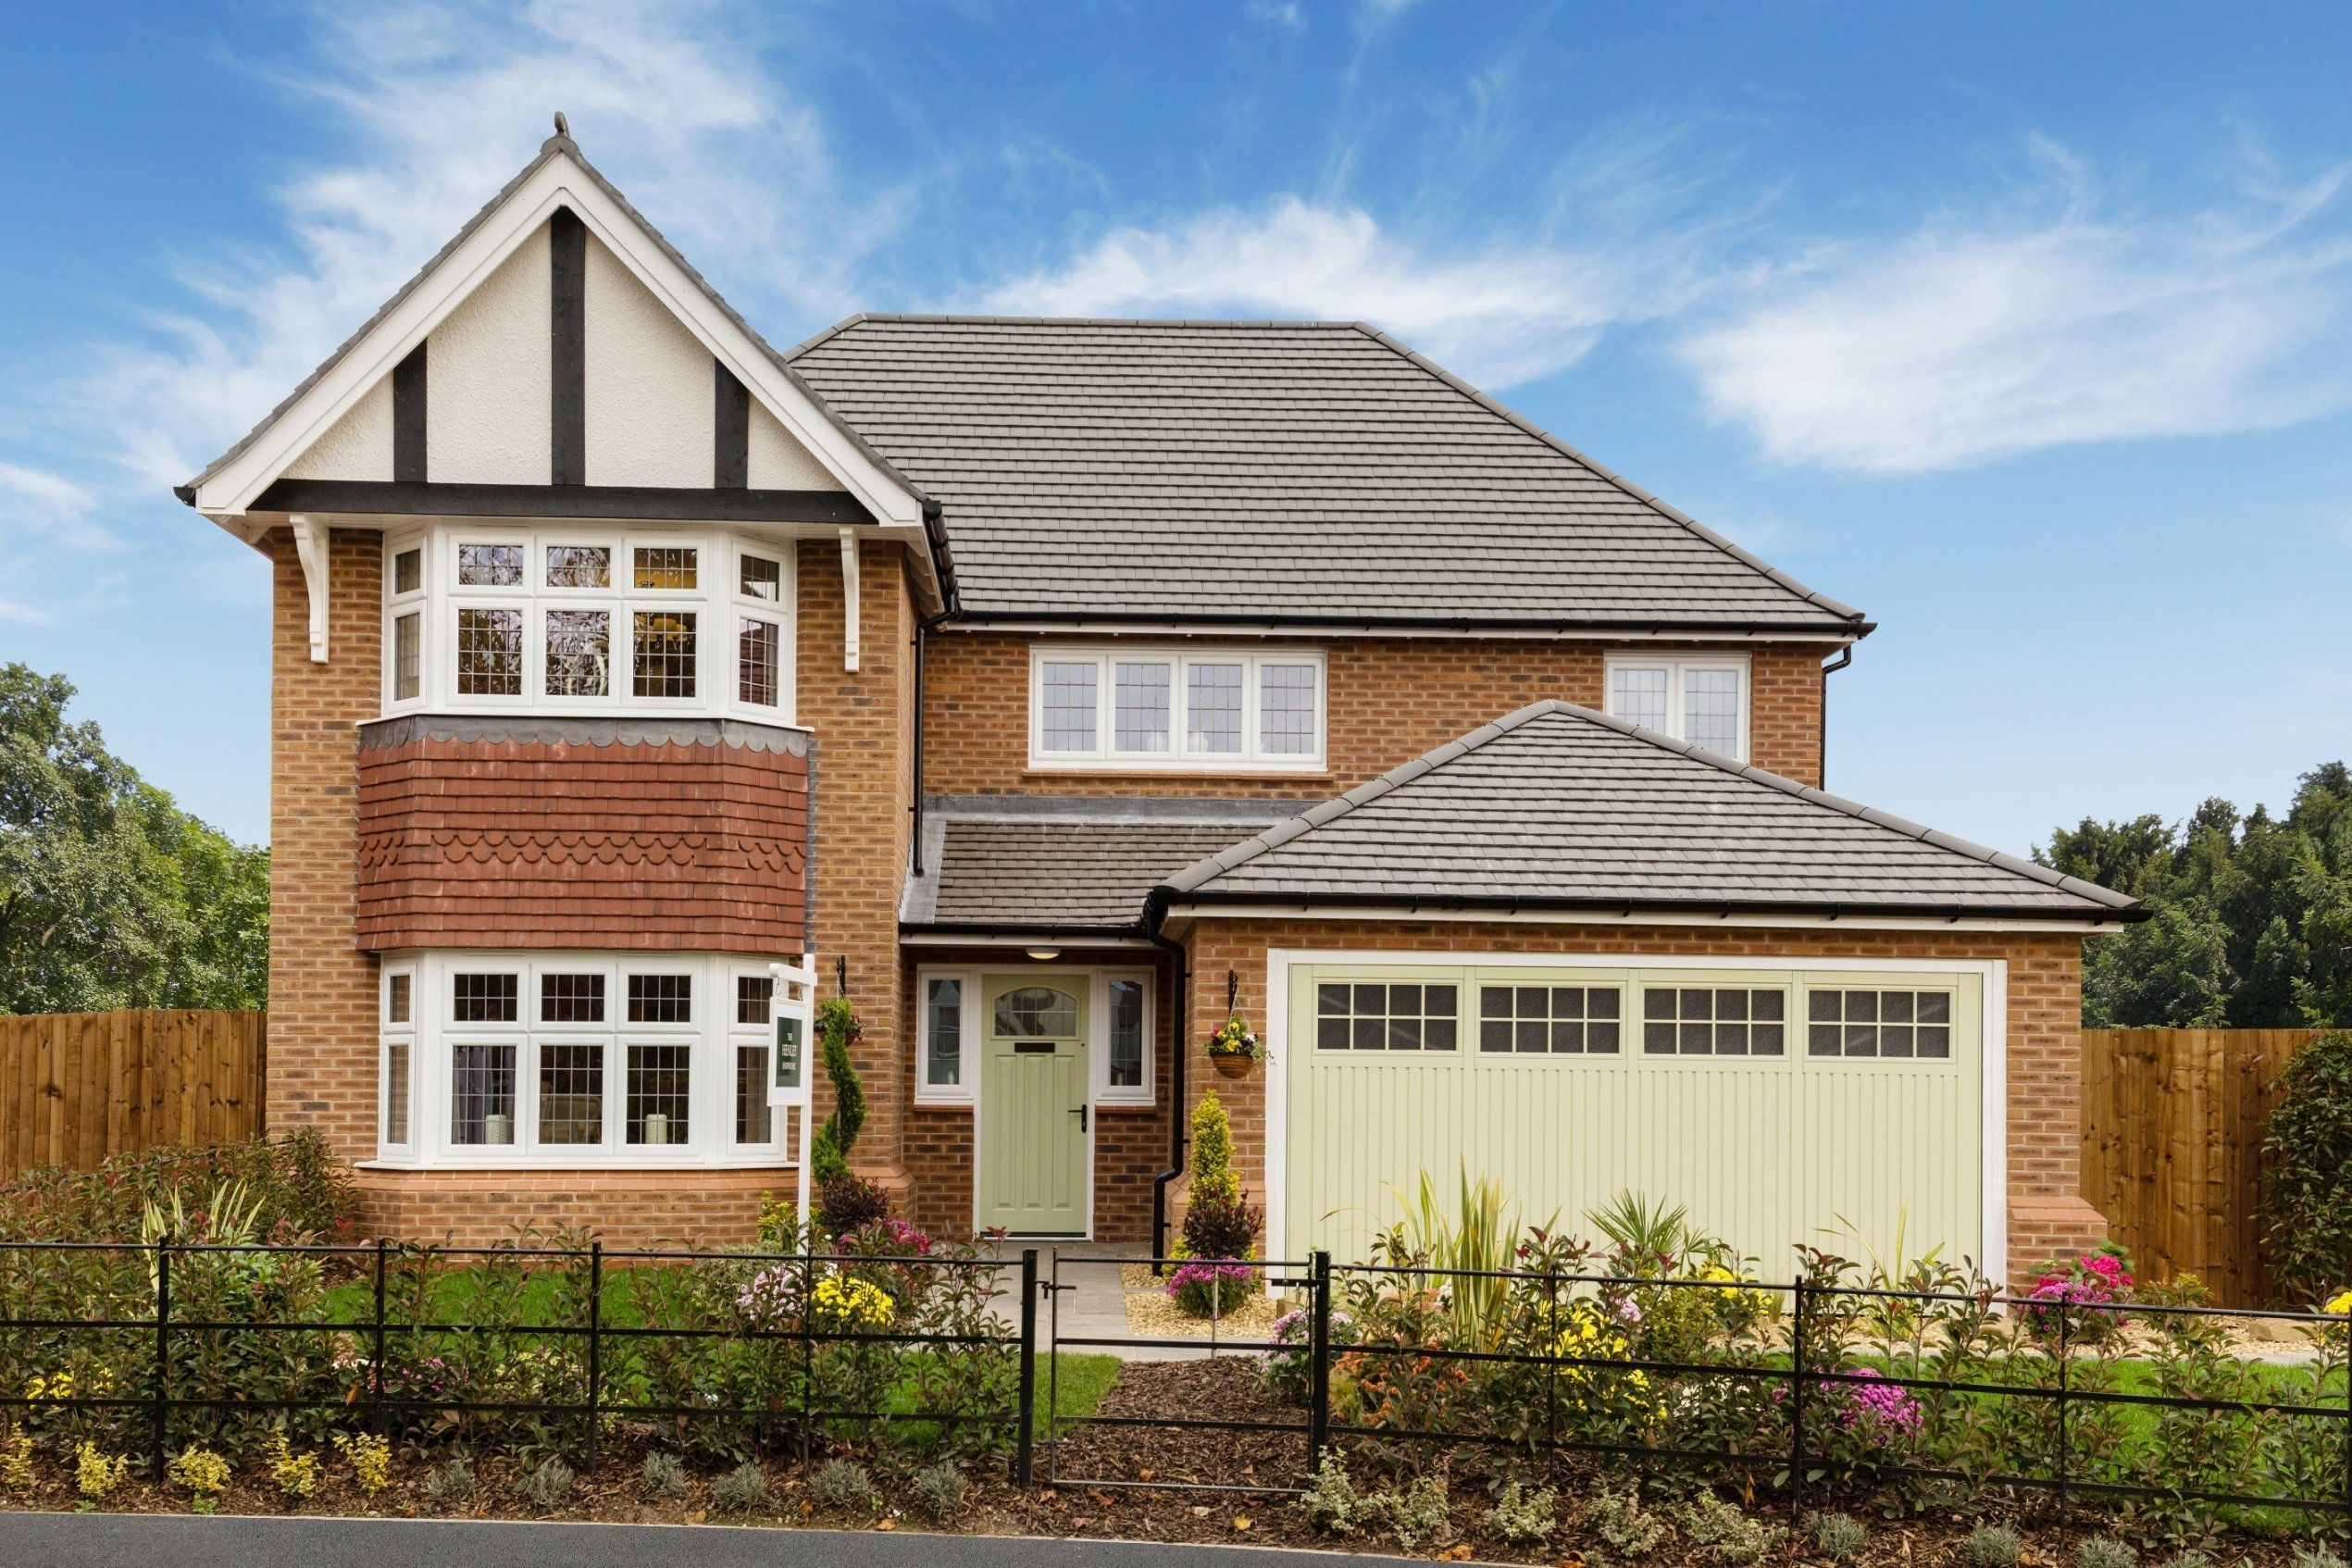 Best Four Bedroom Henley At Redrow's Wrea Green Development Now On Sale Blackpool Gazette With Pictures